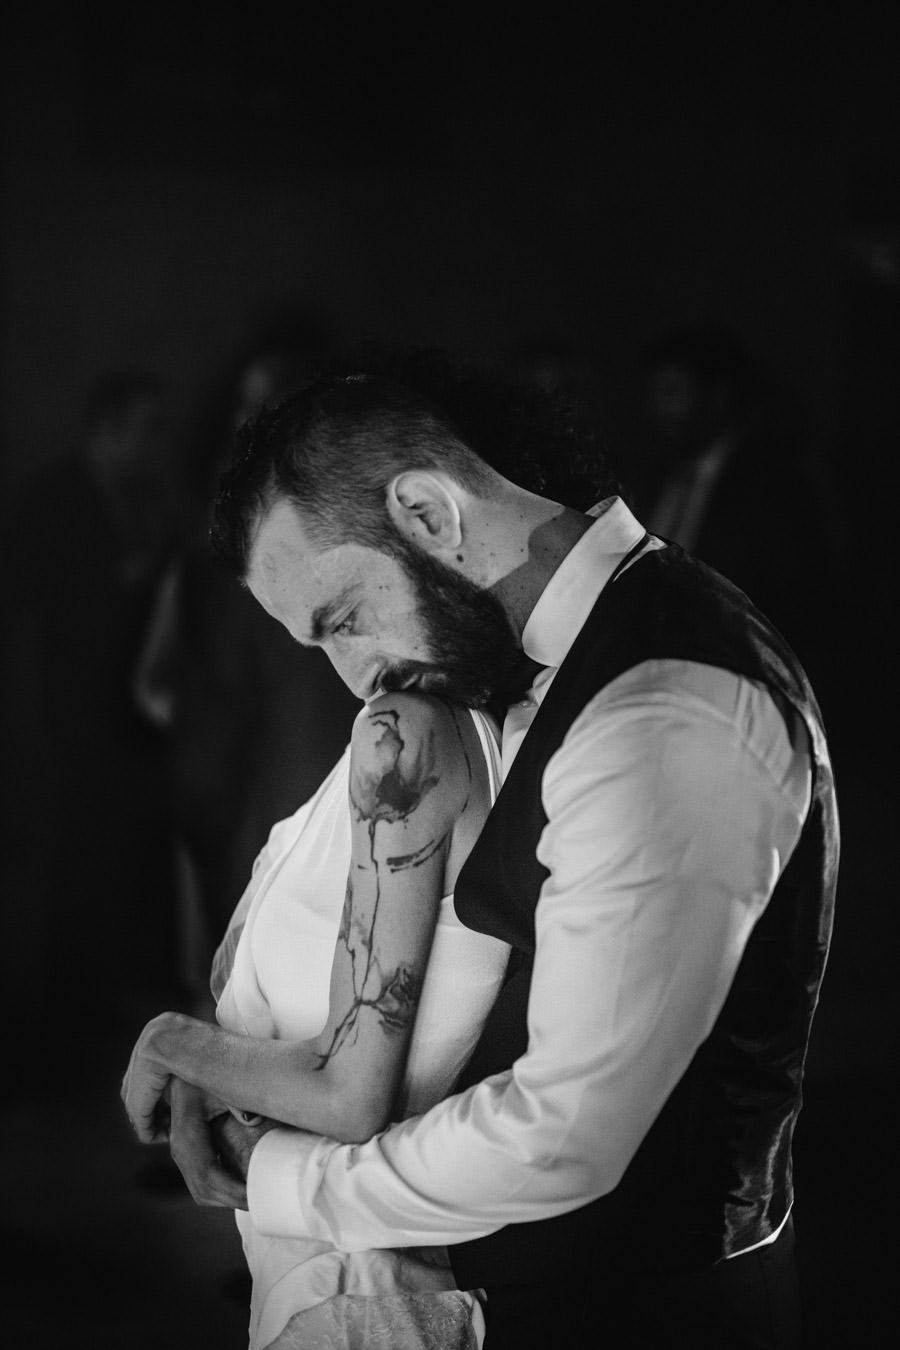 wedding photography Pousada Amares tattoo hug